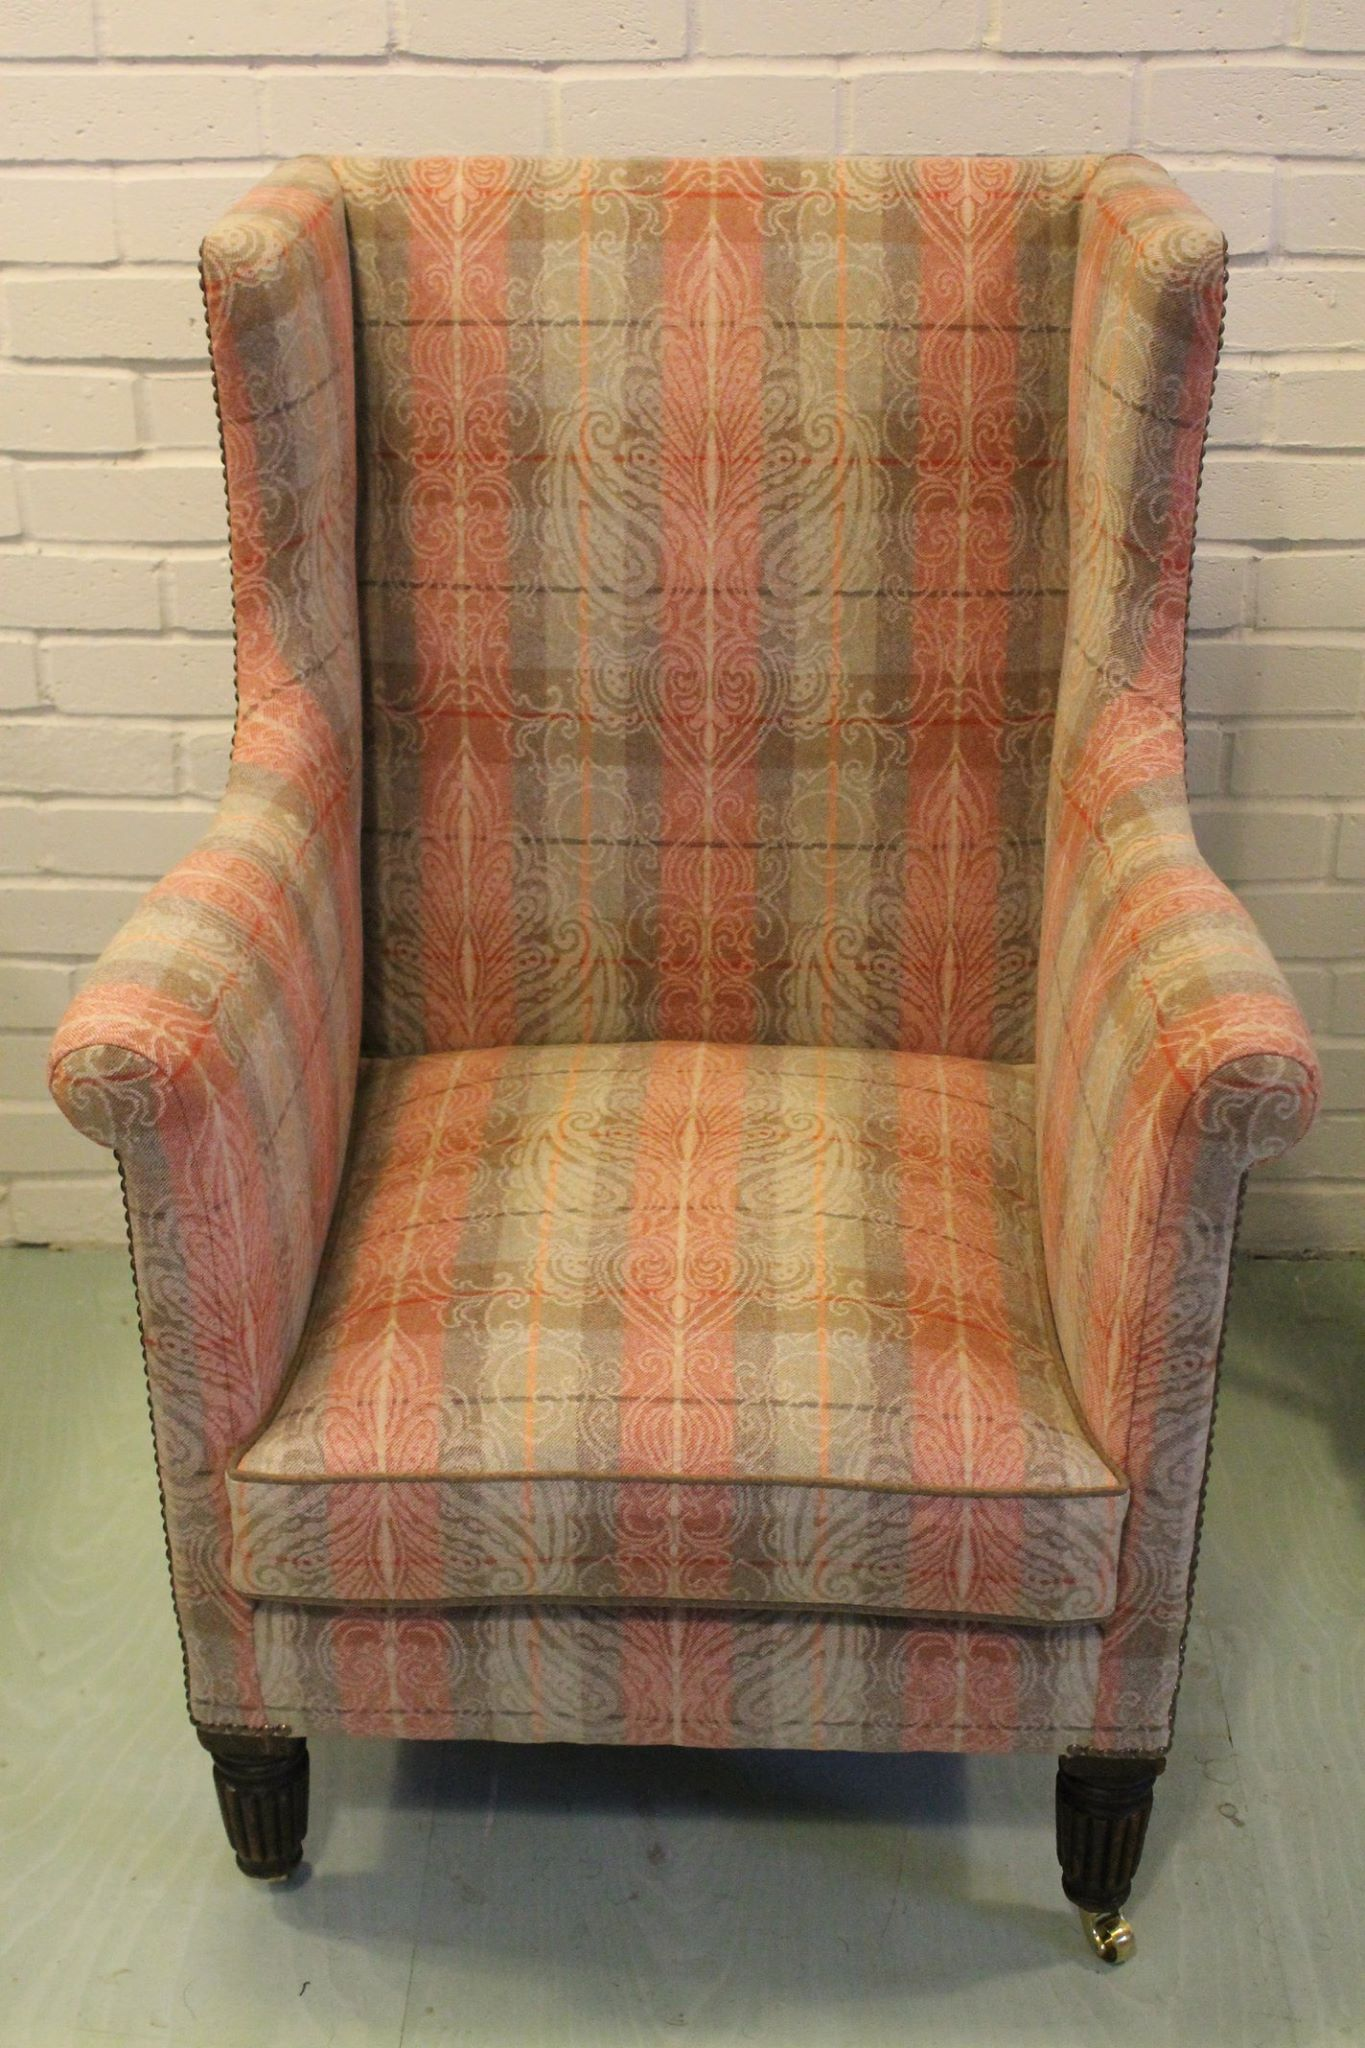 Wingback reupholstered at Kendal Upholstery in Linwood fabric